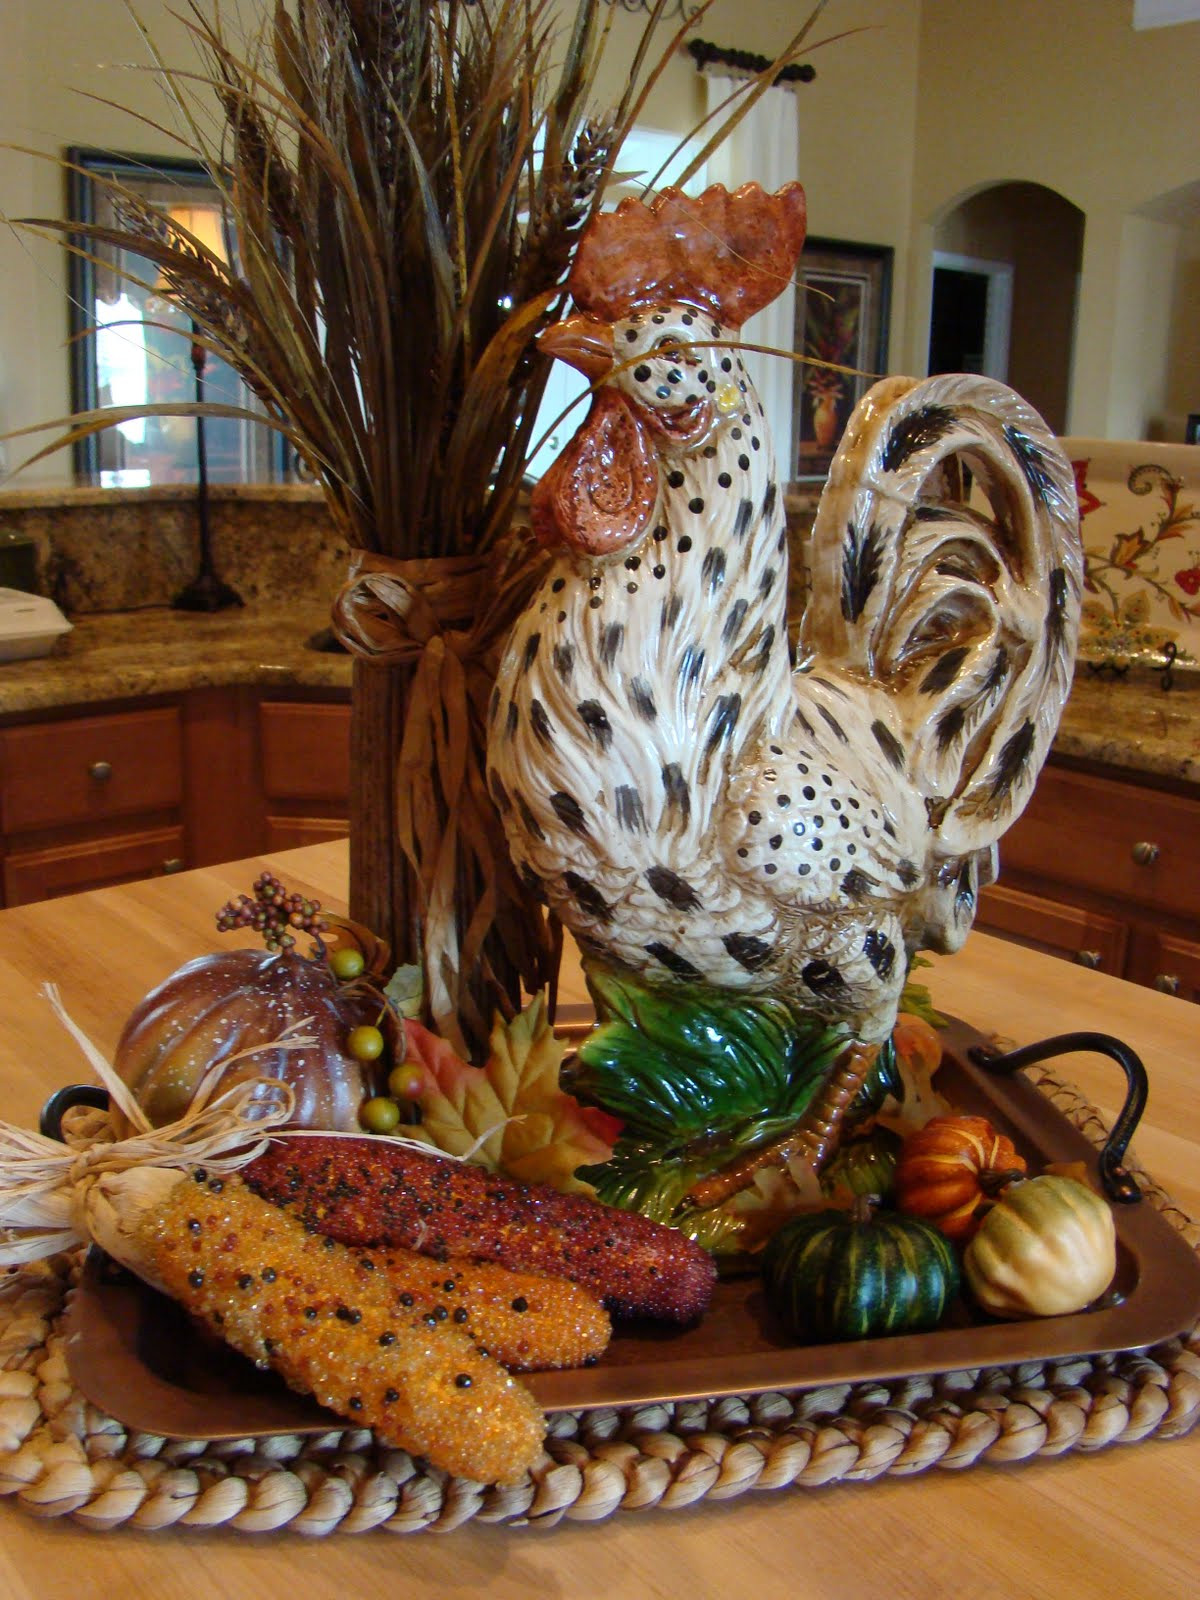 Best ideas about Rooster Kitchen Decor . Save or Pin Adventures in Decorating Fall is in the Air Now.